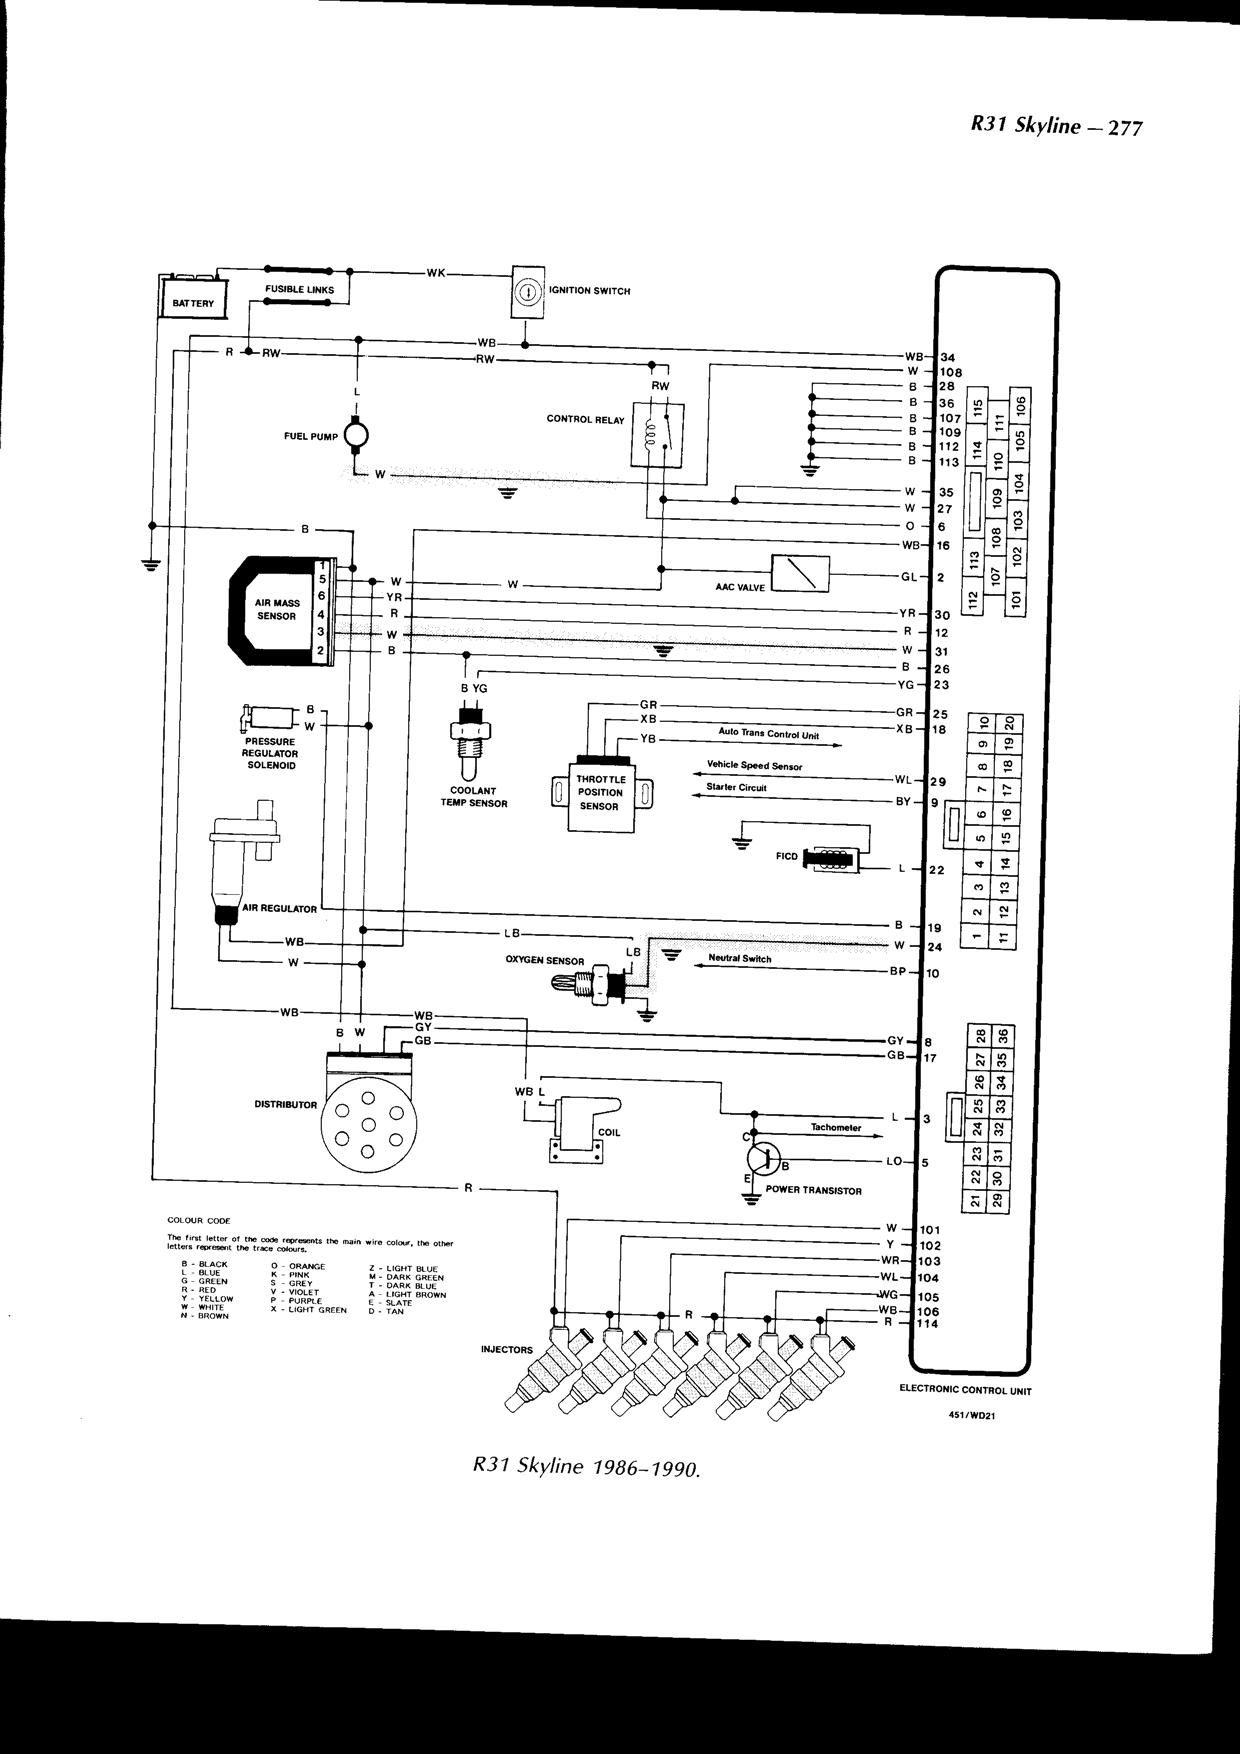 datsun 510 headlight wiring diagram wiring library datsun 510 headlight wiring diagram [ 1240 x 1754 Pixel ]